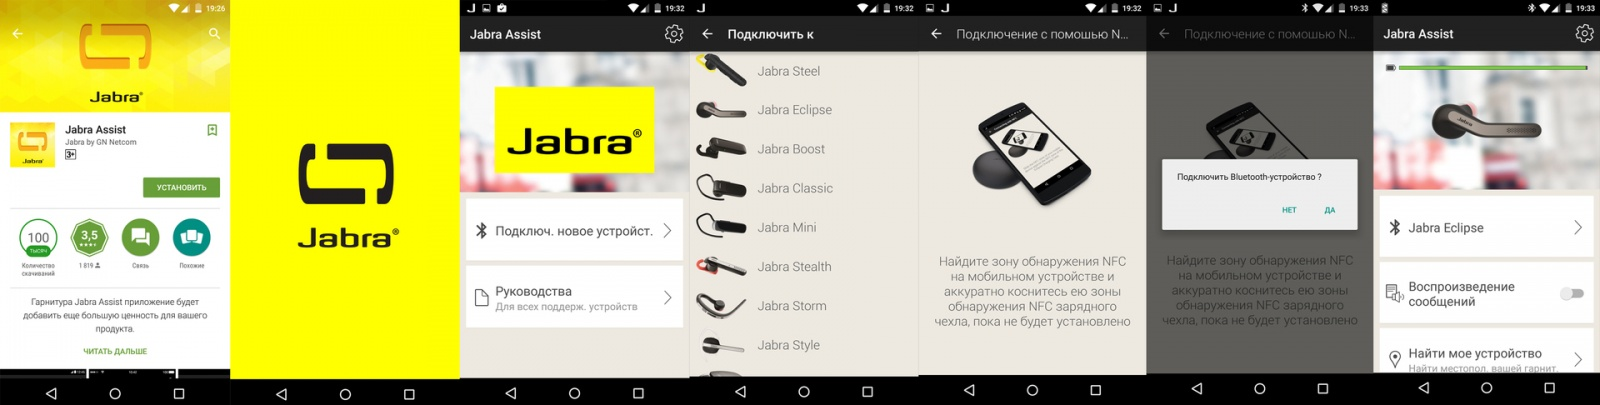 Гарнитура Jabra Eclipse: небюджетный футуризм - 8